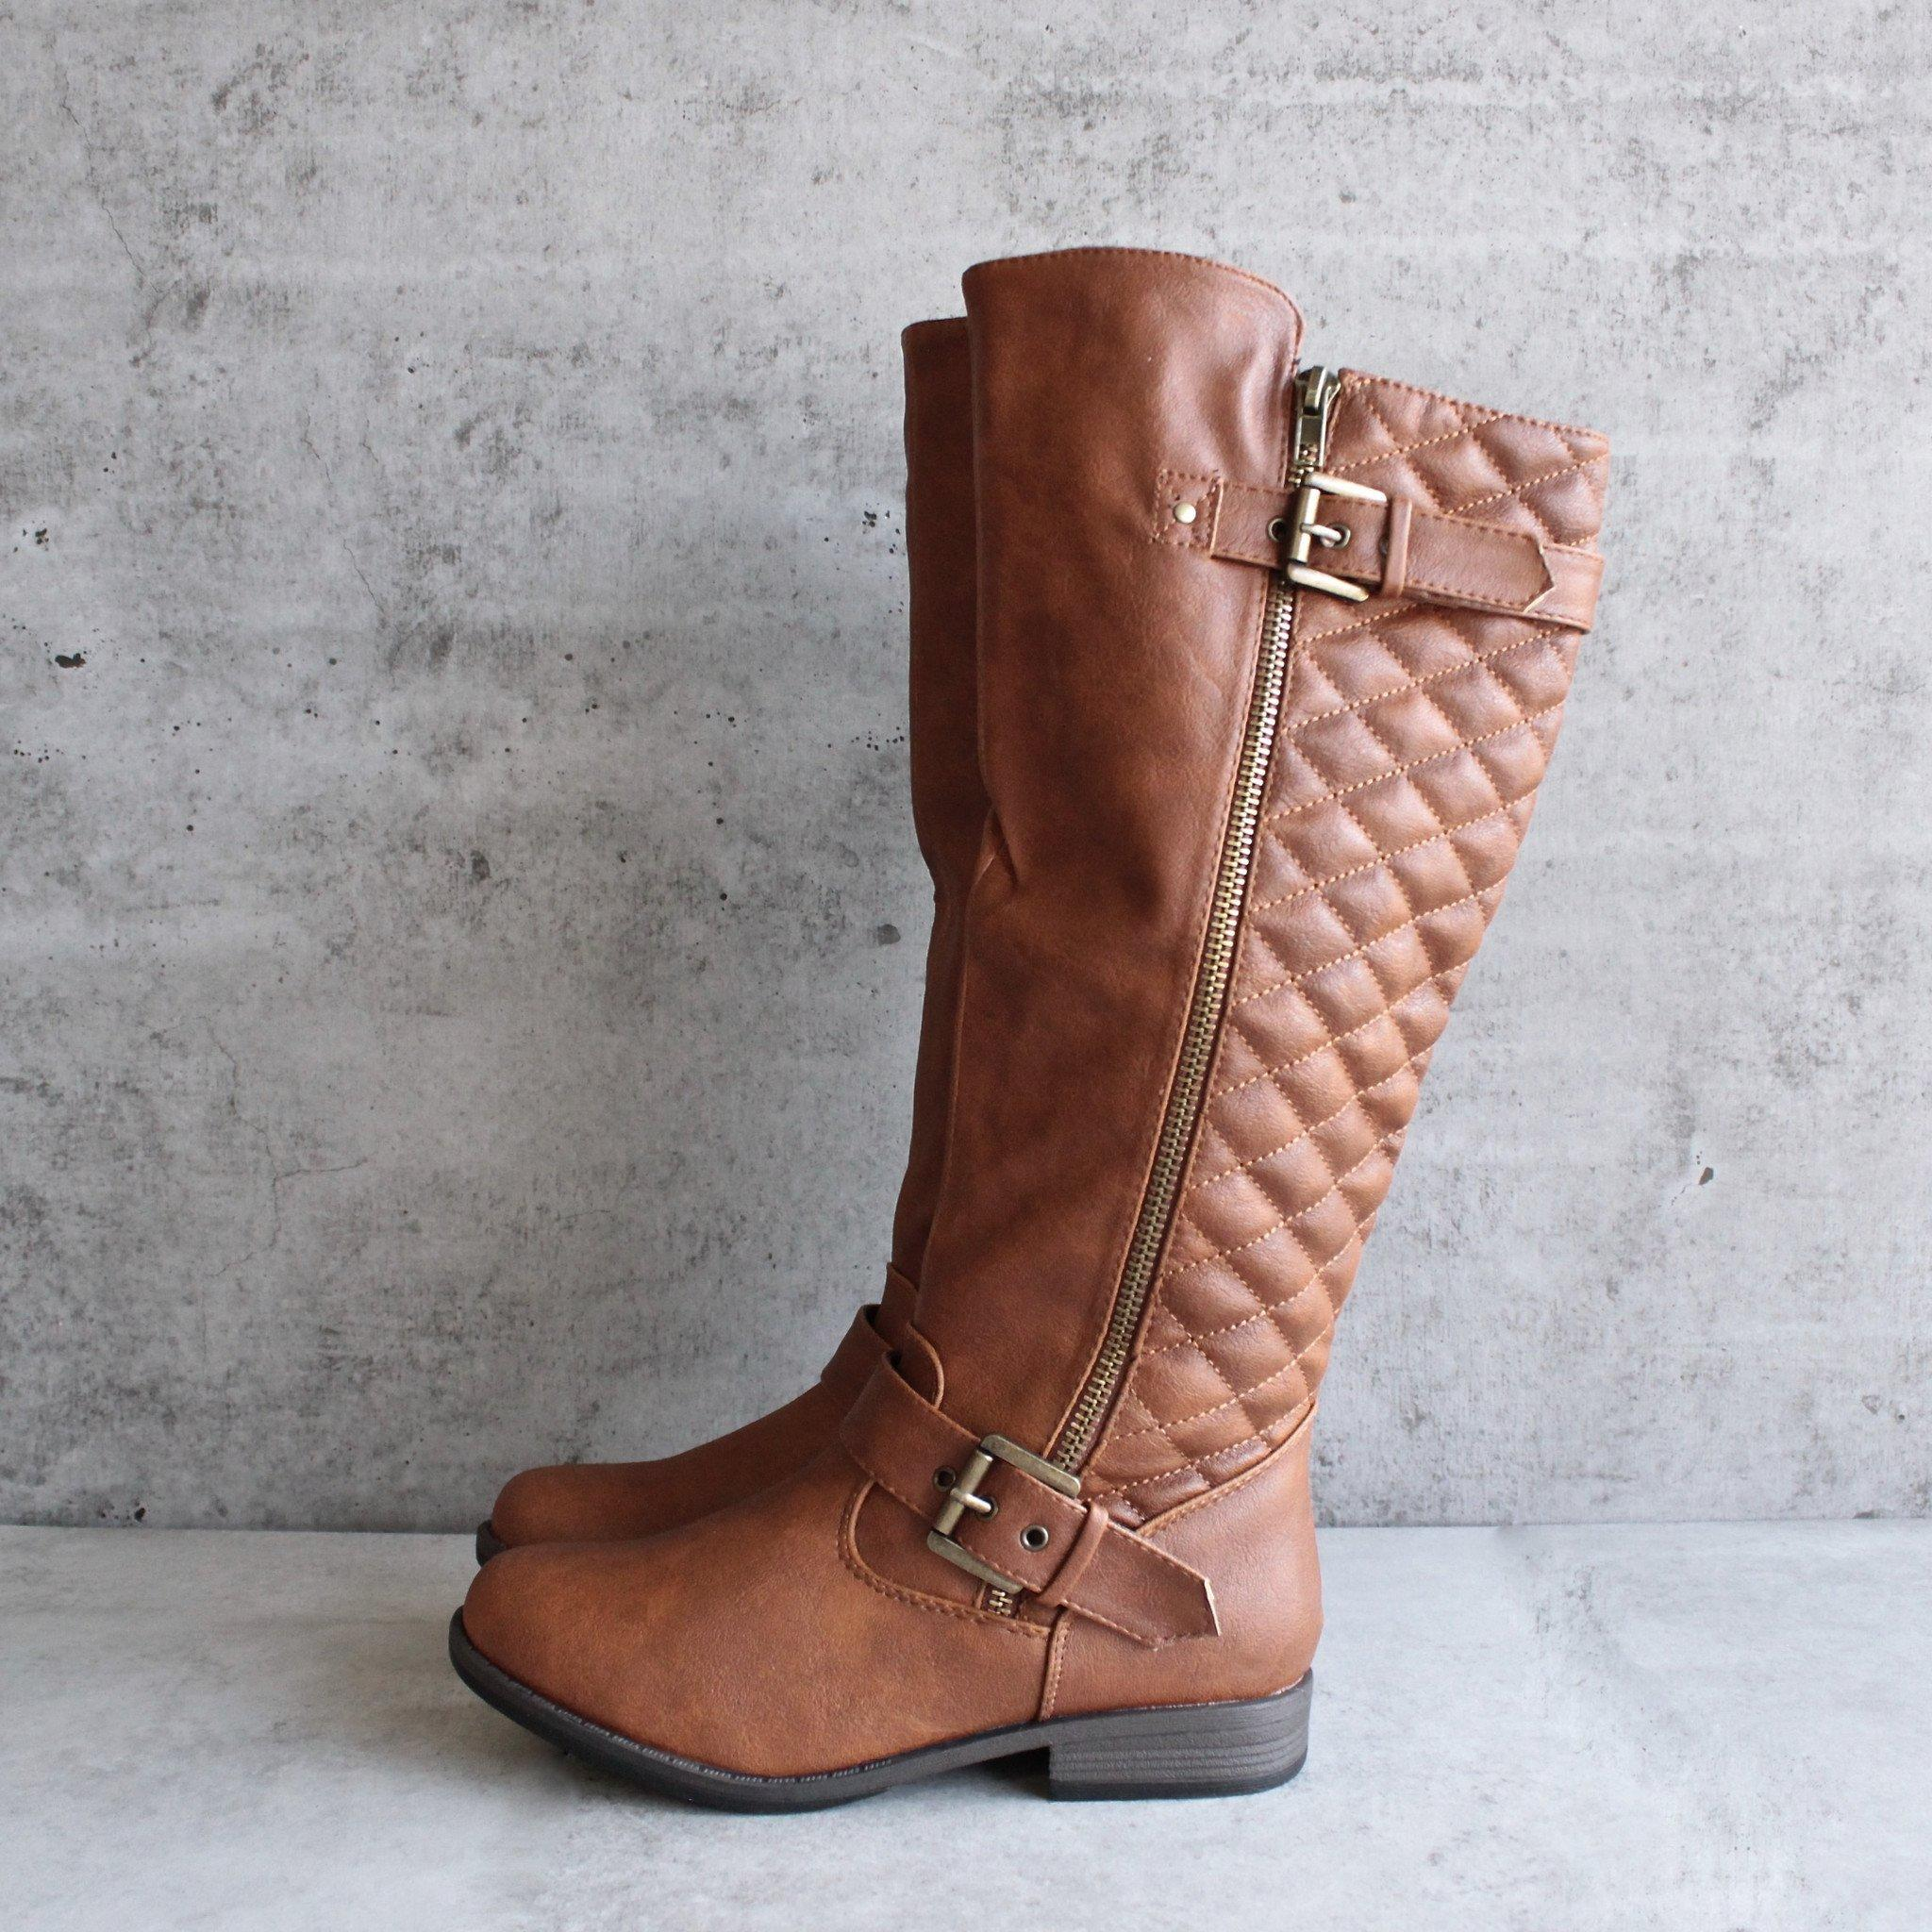 image quilted high women boots brown loading fliv biker black to itm is knee riding s quilt new